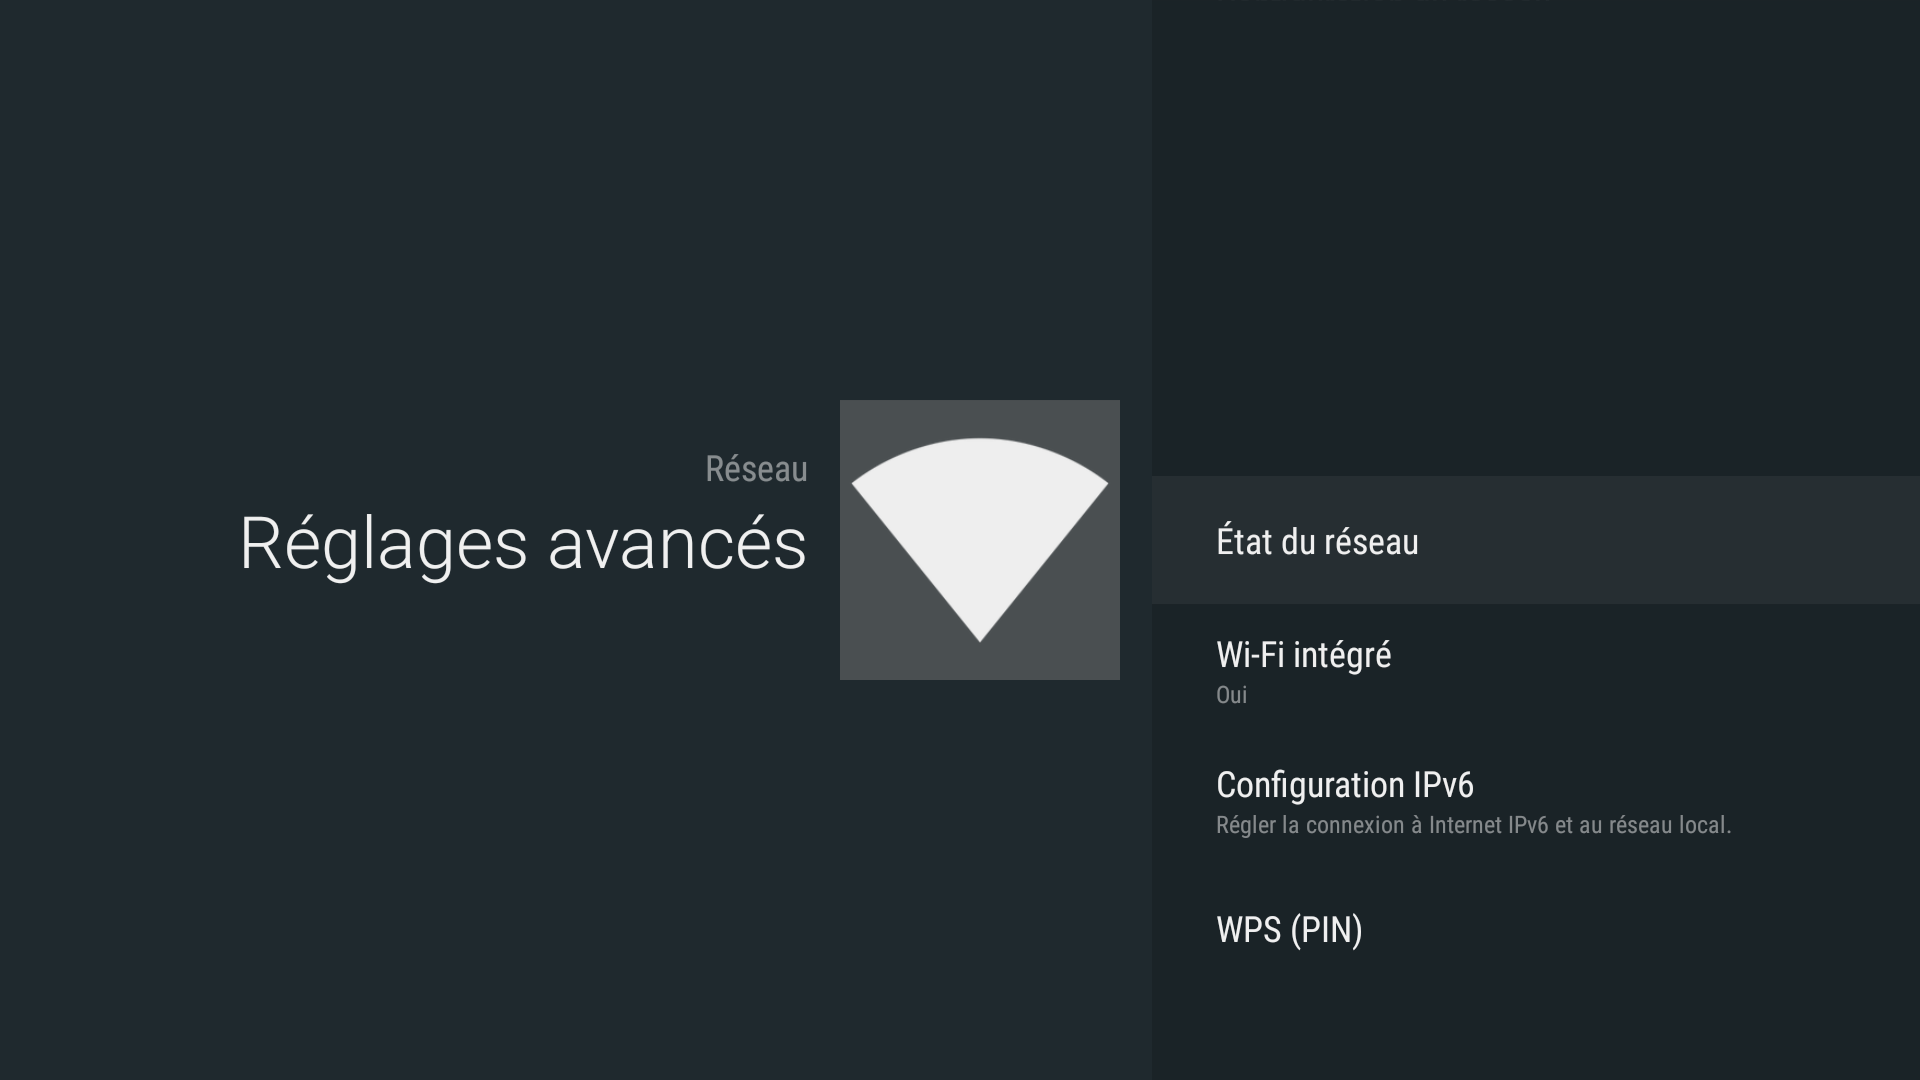 Android - Built-in wifi (Wi-Fi intégré)